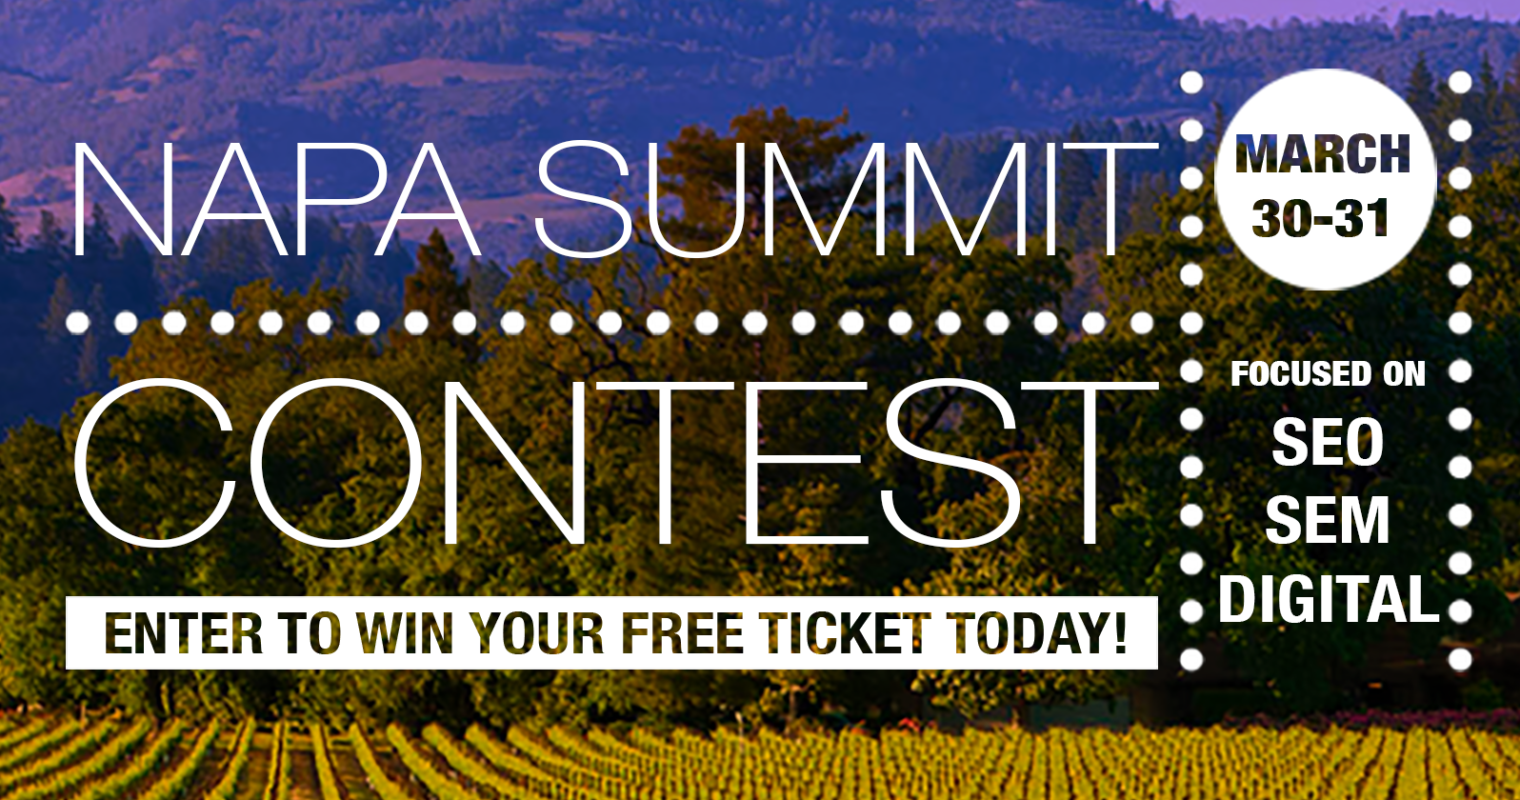 Wine Country Networking: Win A Free Ticket to Napa Summit 2017!